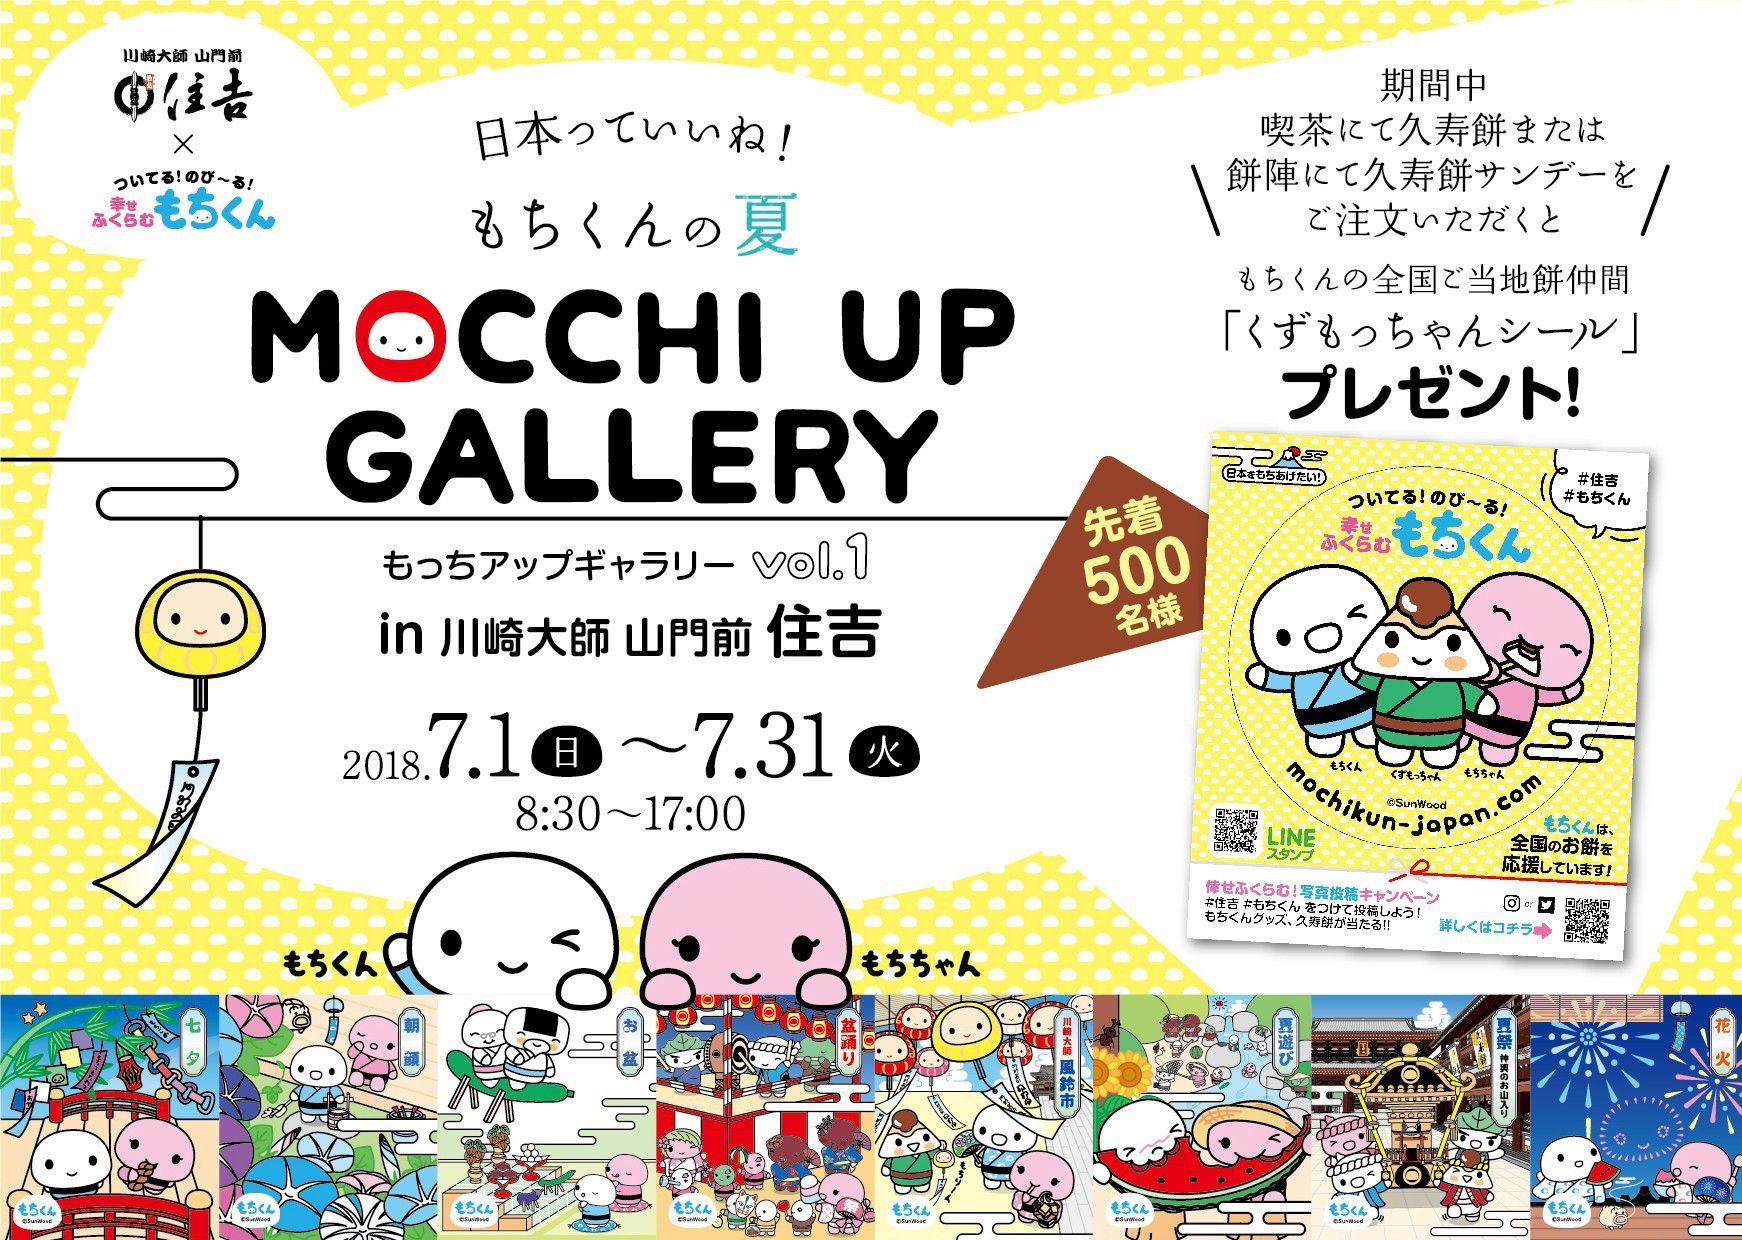 MOCCHI UP GALLERY Vol.1住吉